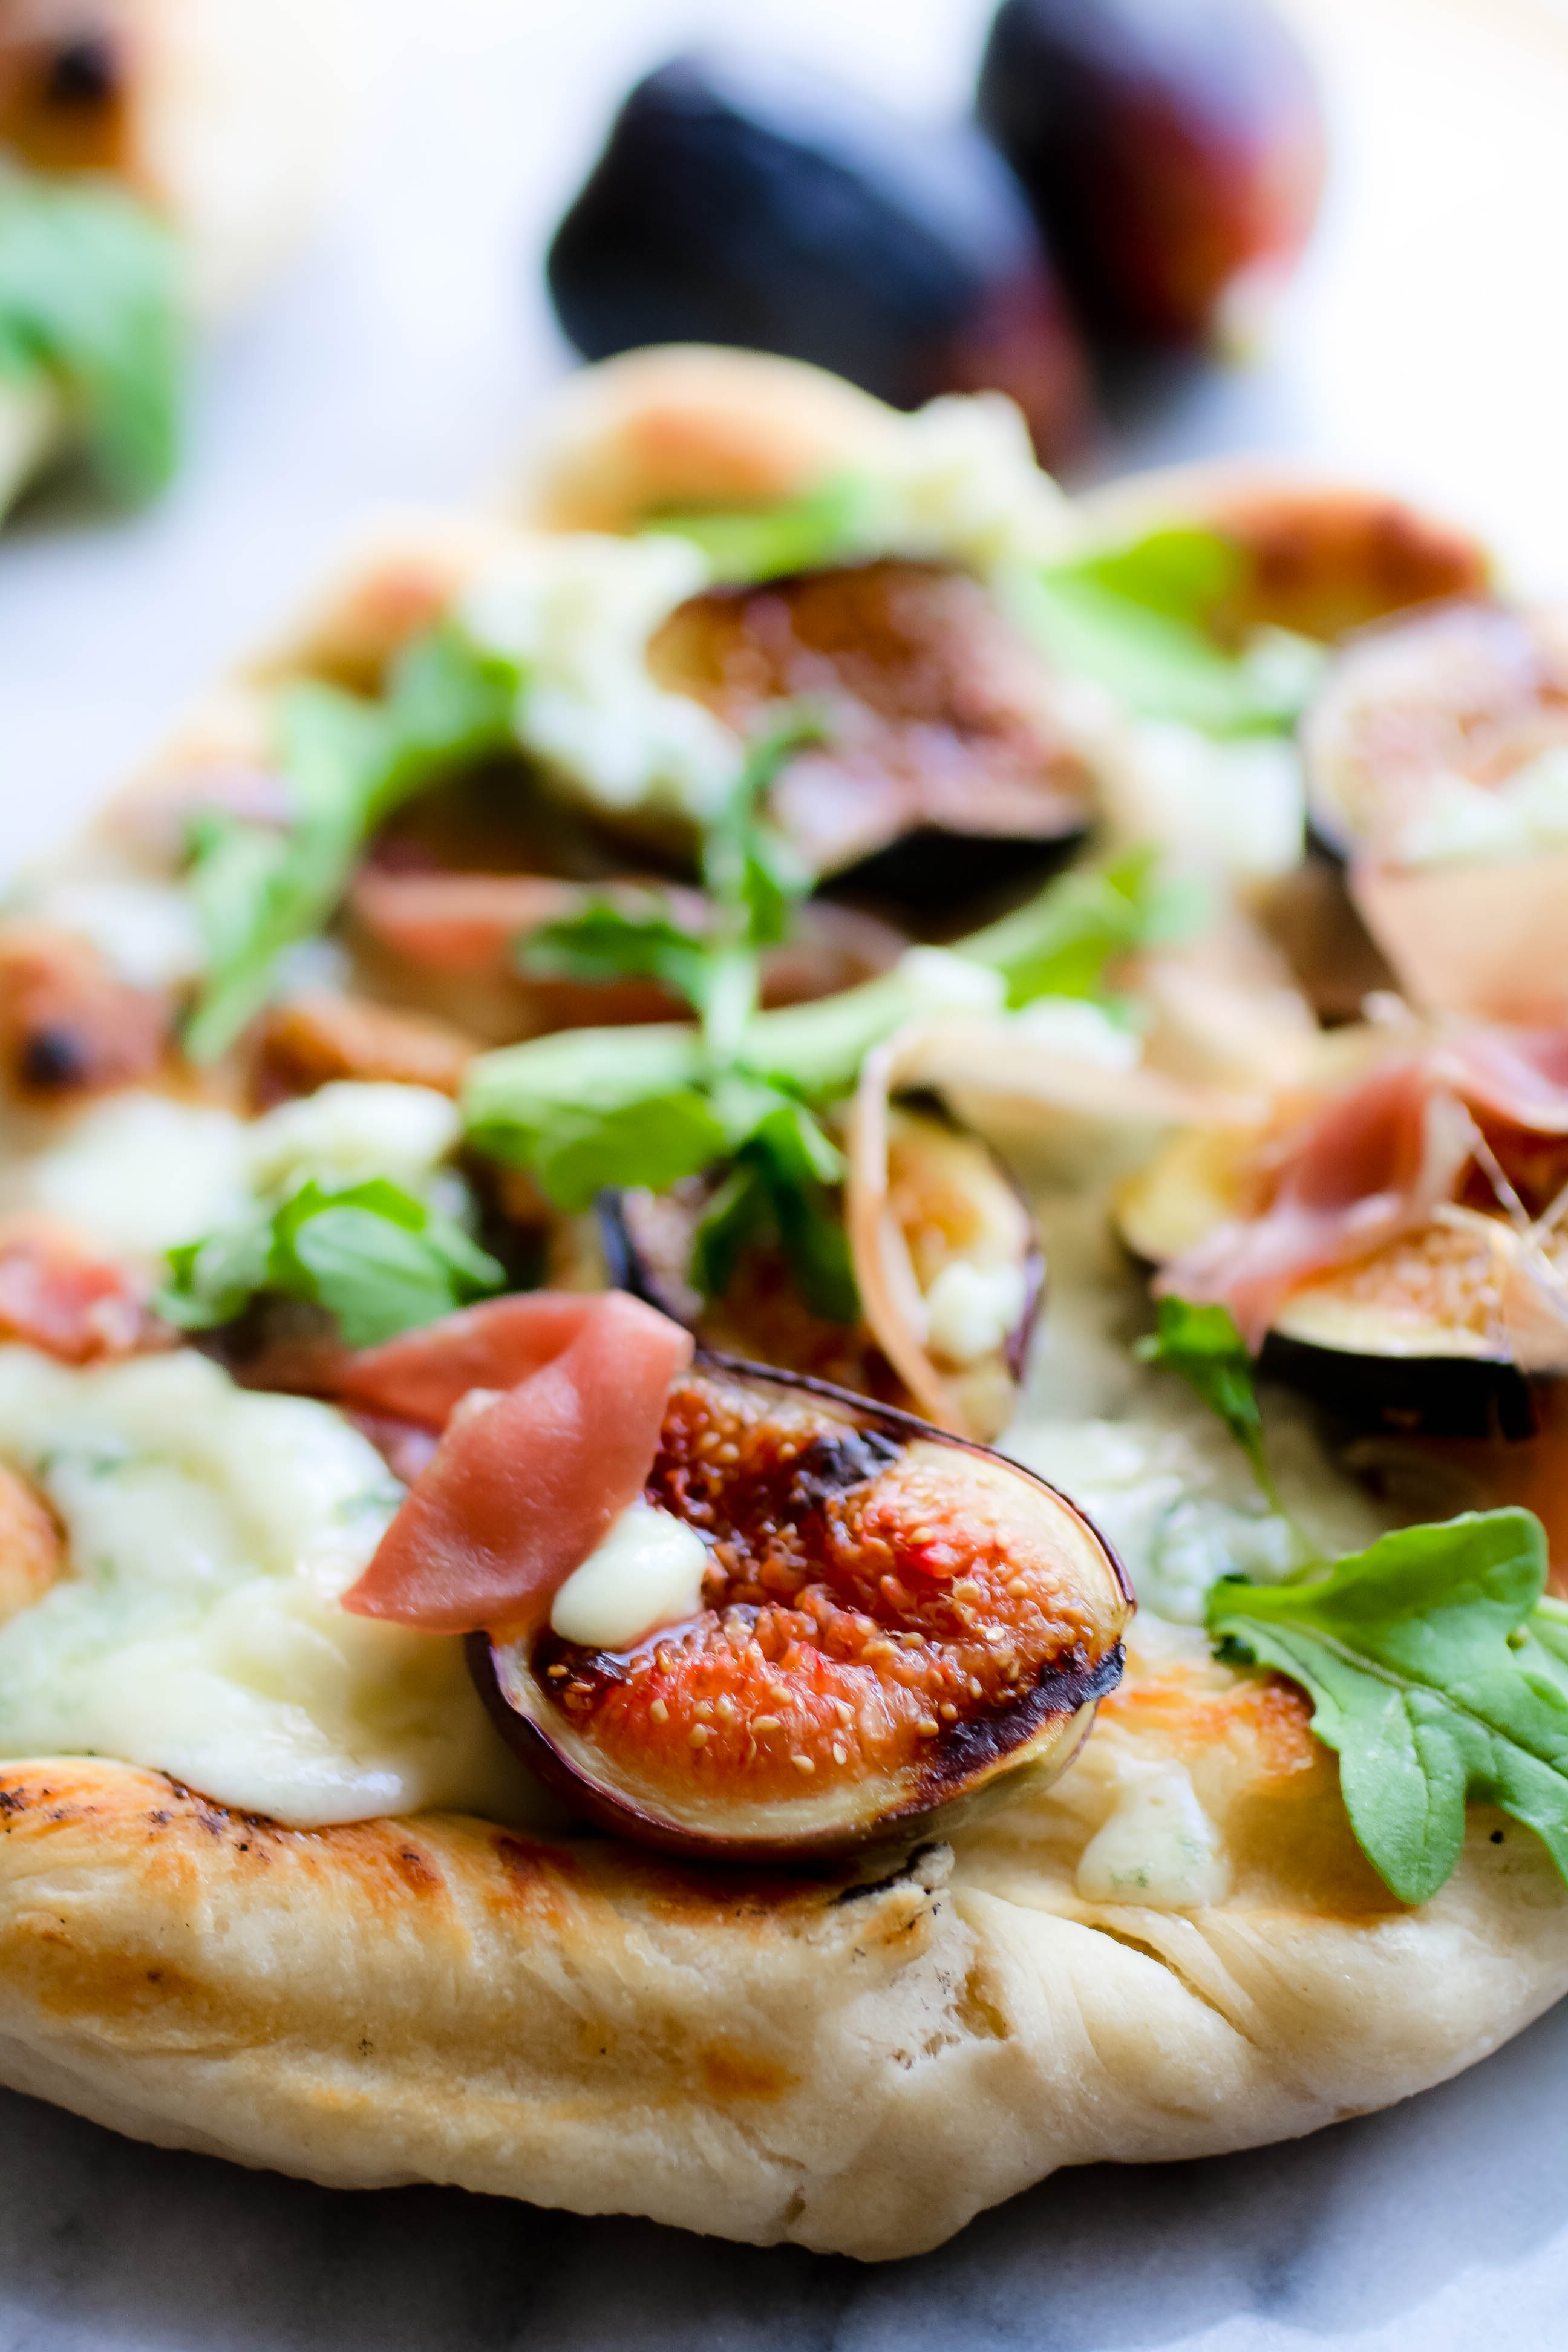 Grilled Pizza with Fig, Prosciutto, and Blue Cheese is a great grilled pizza. You'll enjoy Grilled Pizza with Fig, Prosciutto, and Blue Cheese this season.